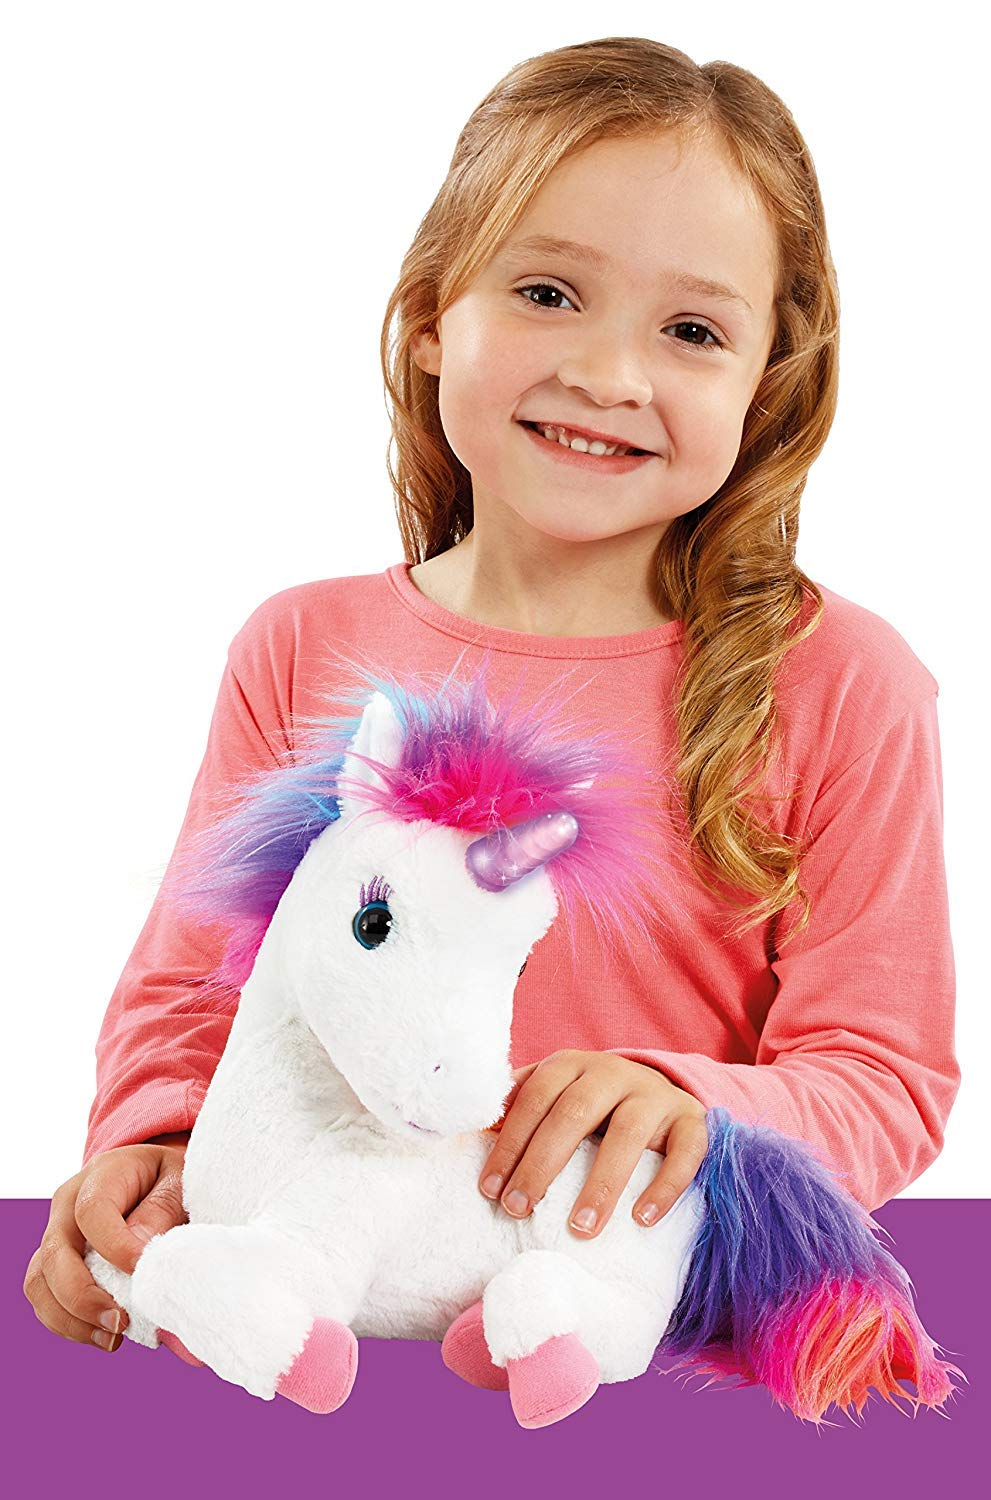 AniMagic Rainbow - My Glowing Unicorn, a Soft Unicorn Plush Toy with Glowing Horn and Unicorn Sounds 5